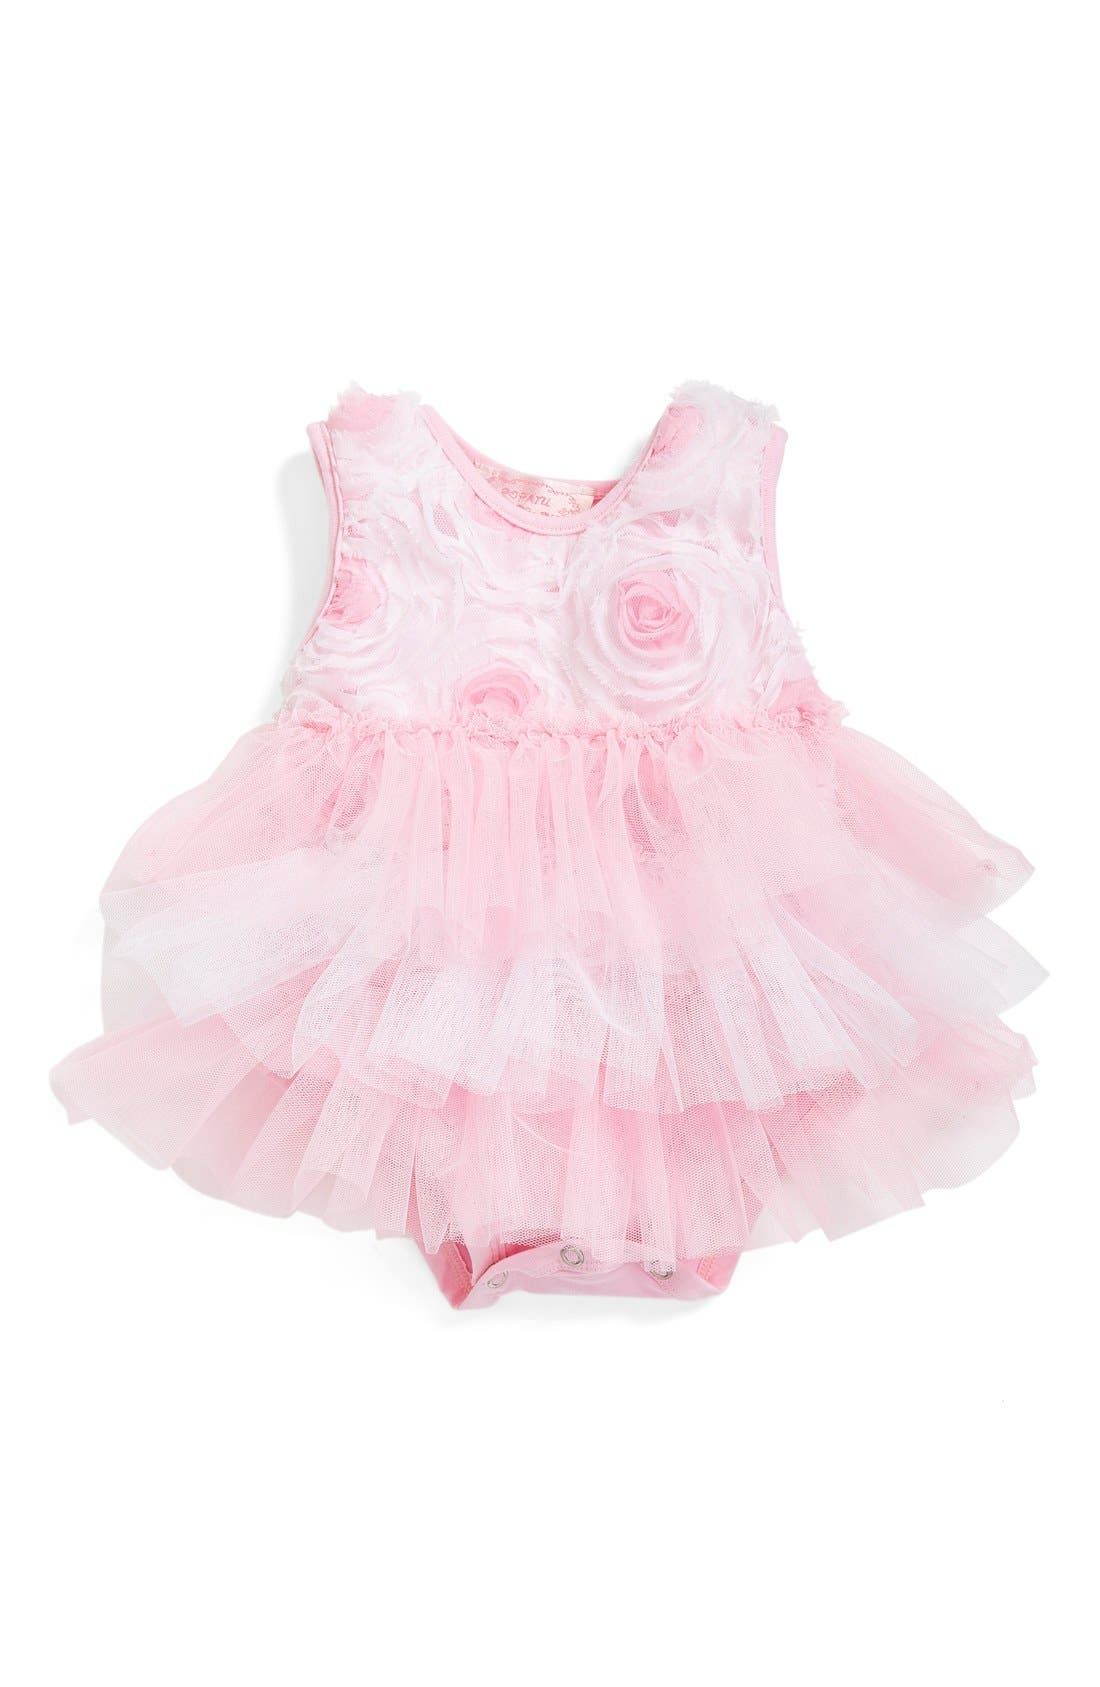 Popatu Ribbon Rosette Ruffle Tier Bodysuit (Baby Girls)